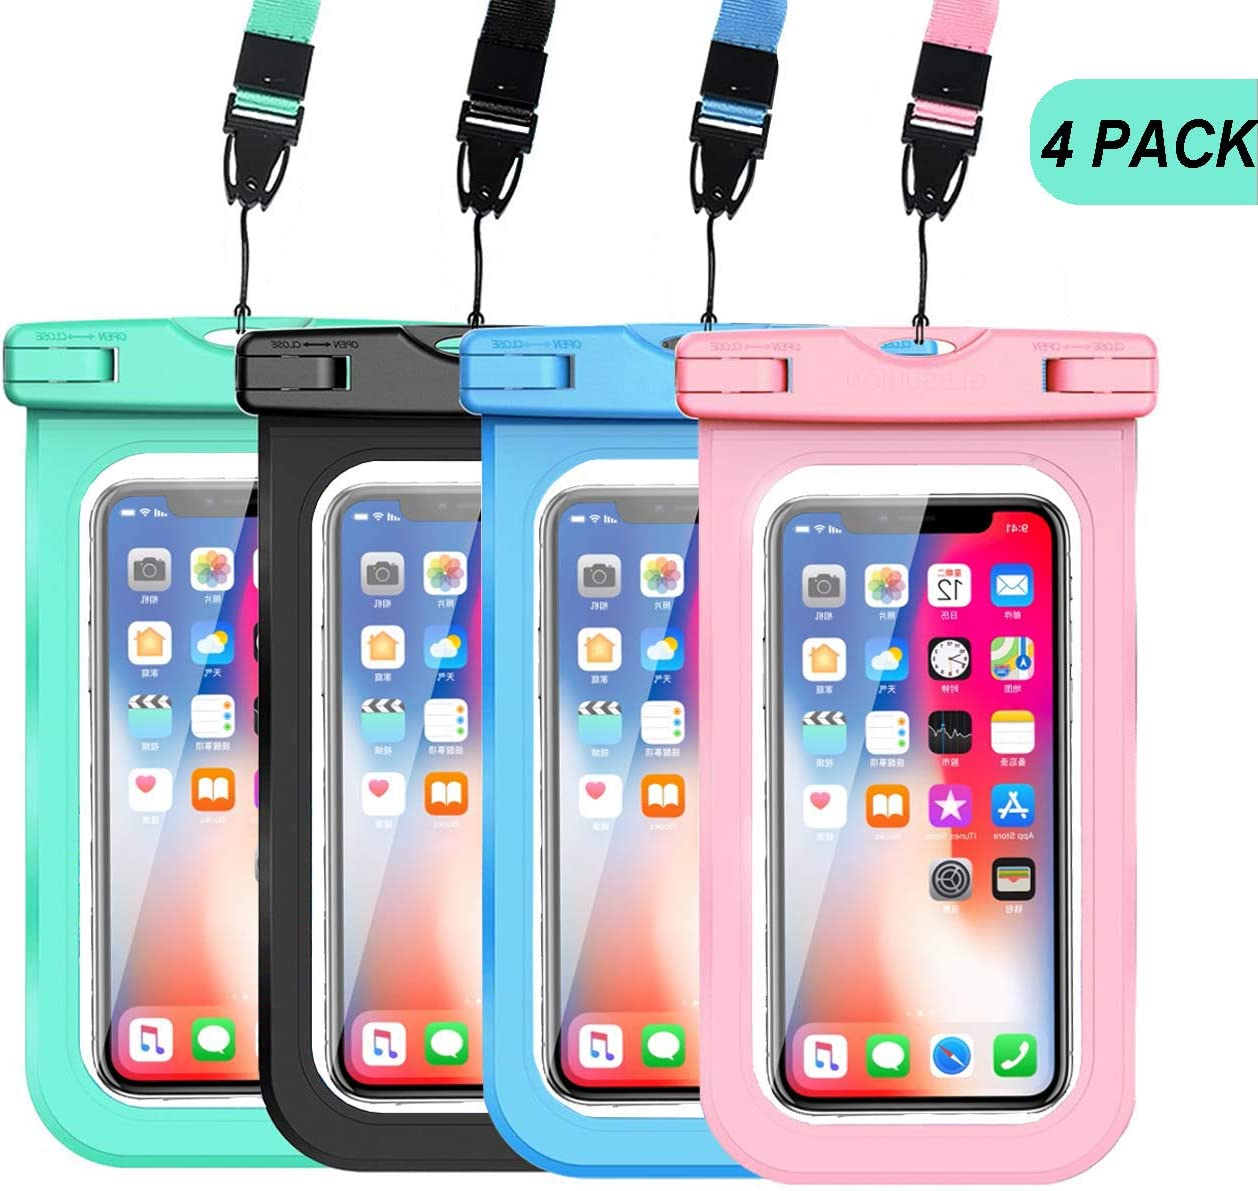 "GLBSUNION Waterproof Phone Pouch, IPX8 Universal Water proof Case Underwater Dry Bag 4-Pack Compatible for iPhone 11 Pro XS MAX XR X 8 up to 6.9"", Protective Pouch for Pools Beach Kayaking Travel Bath"